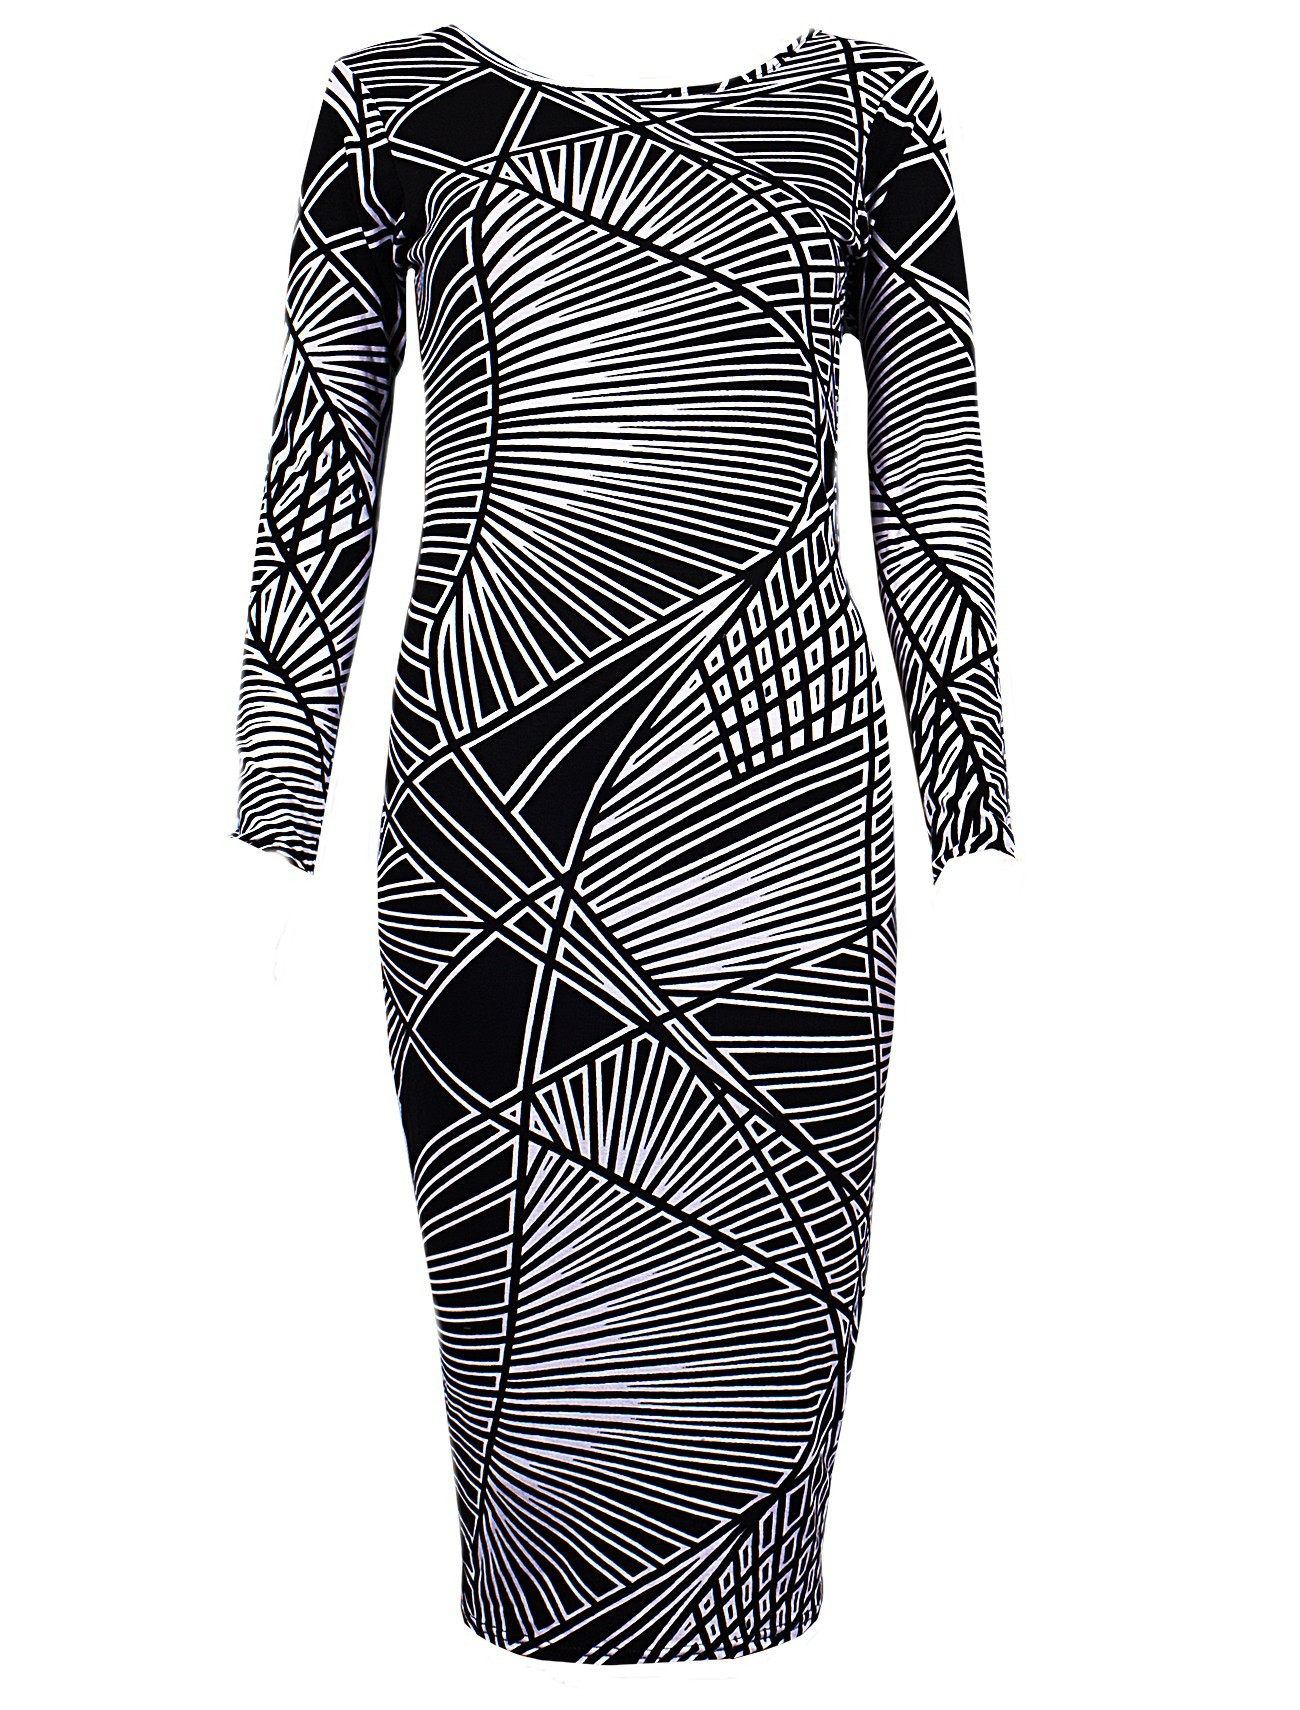 Robe monochrome tribal